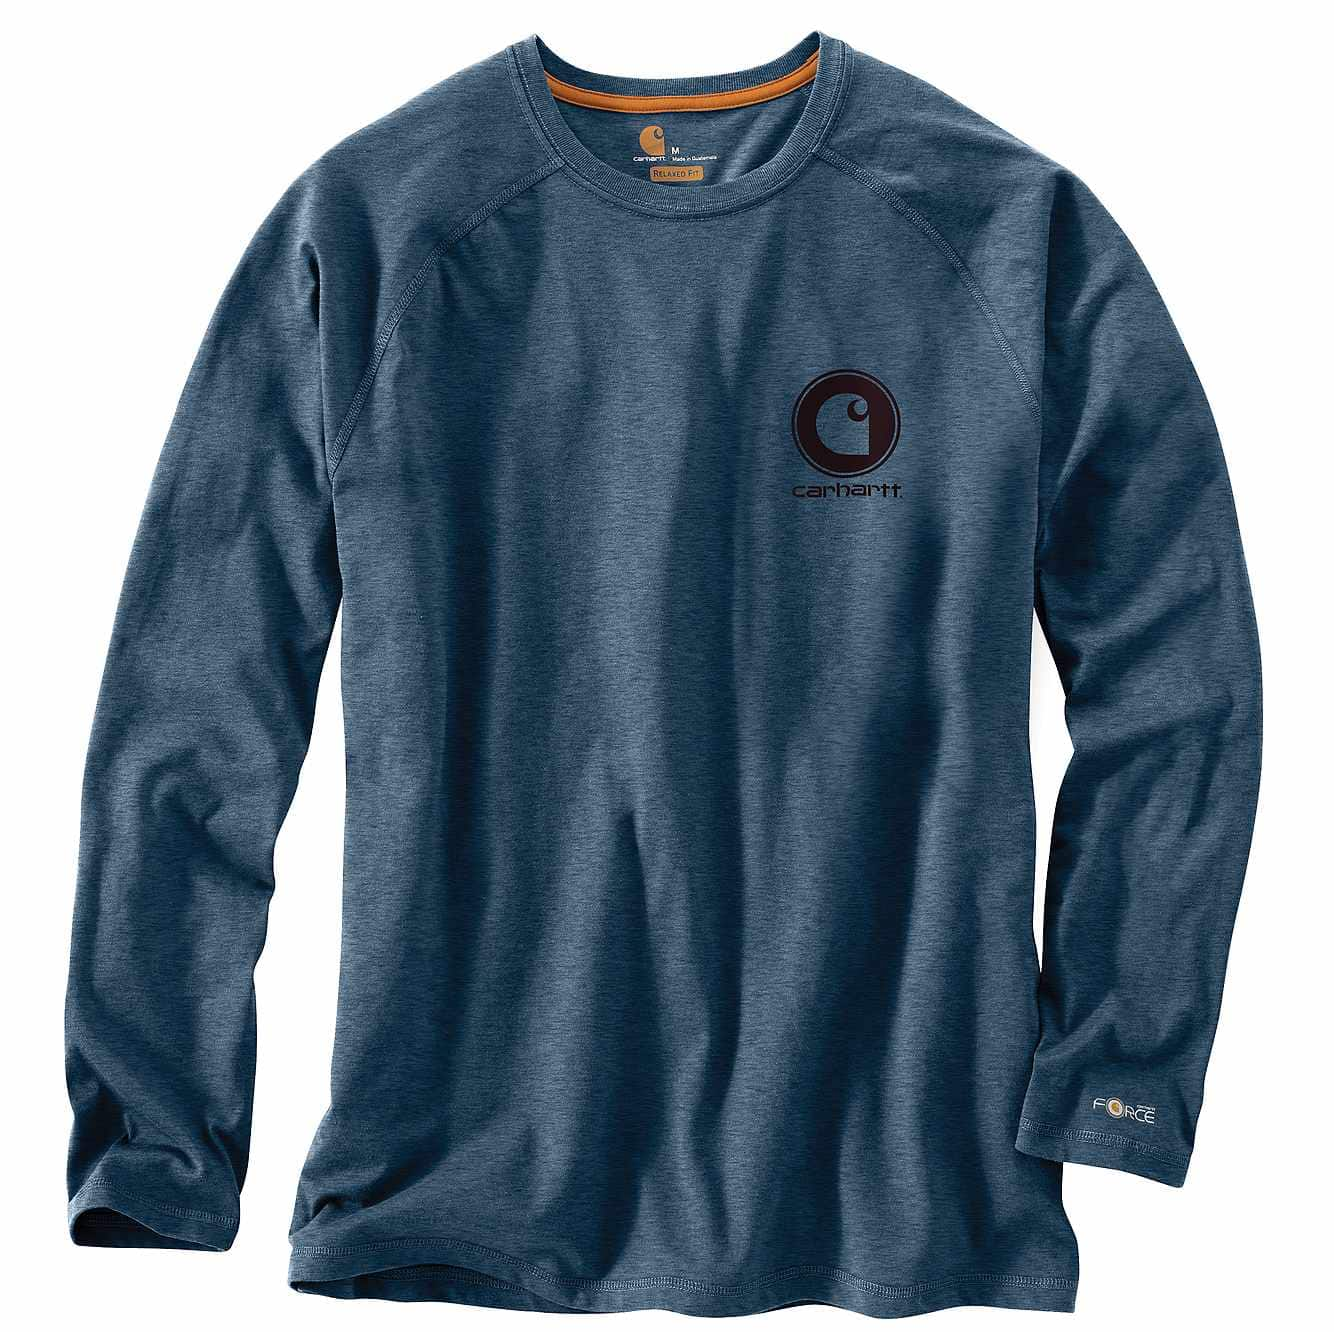 Picture of Force Cotton Delmont Long-Sleeve Graphic T-Shirt in Light Huron Heather